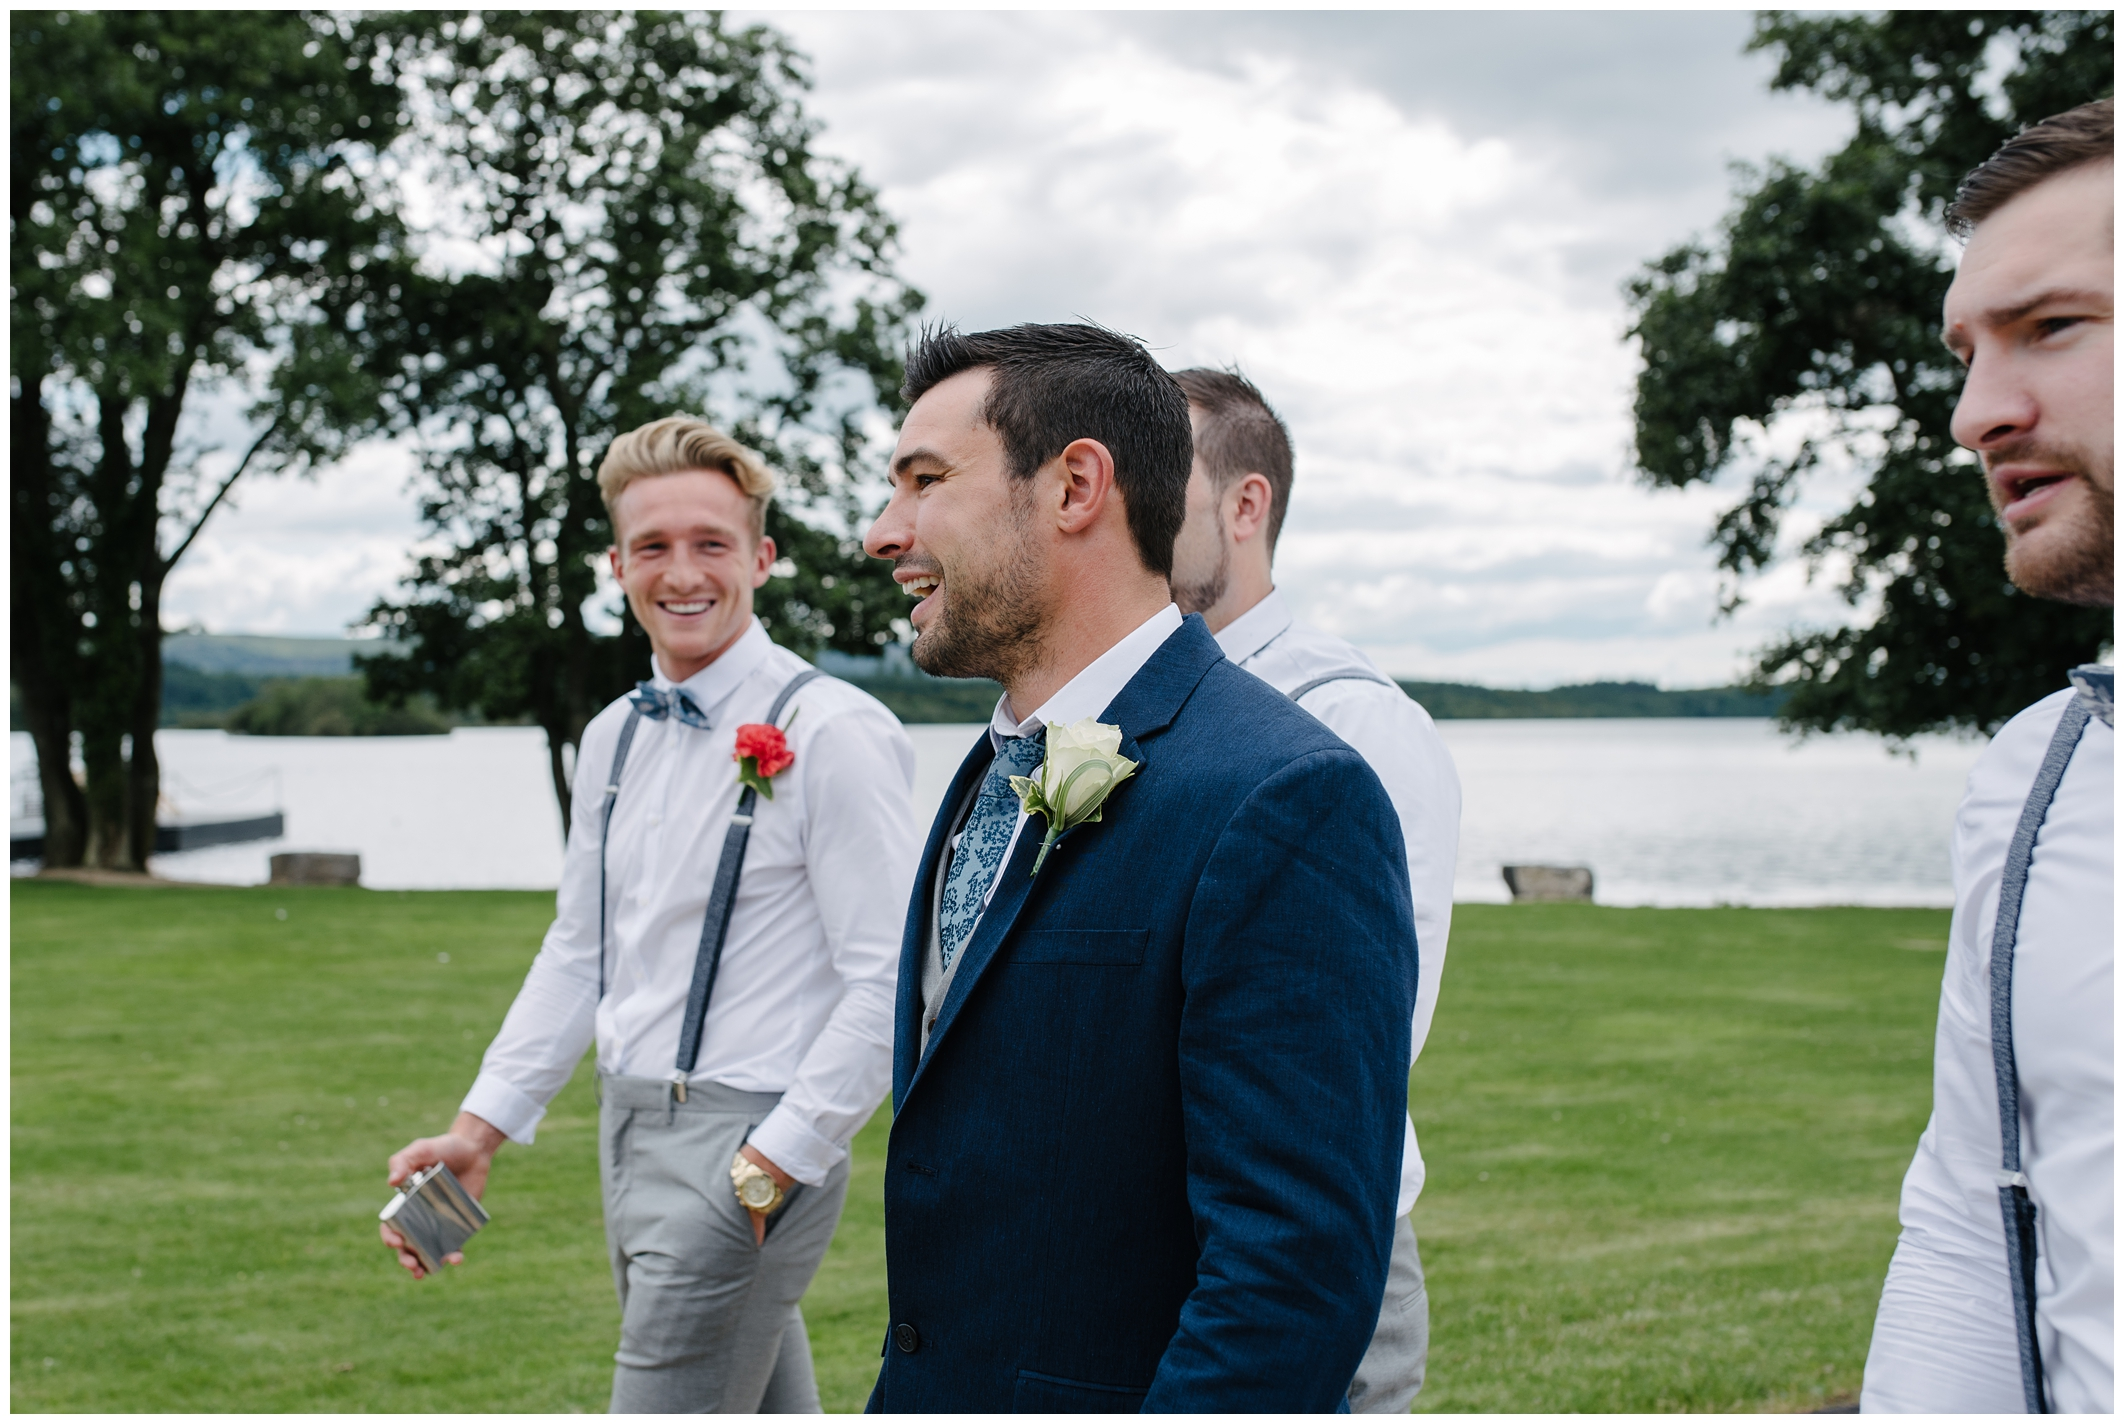 Lynsey_Andy_Rossharbour_Fermanagh_wedding_jude_browne_photography_0019.jpg